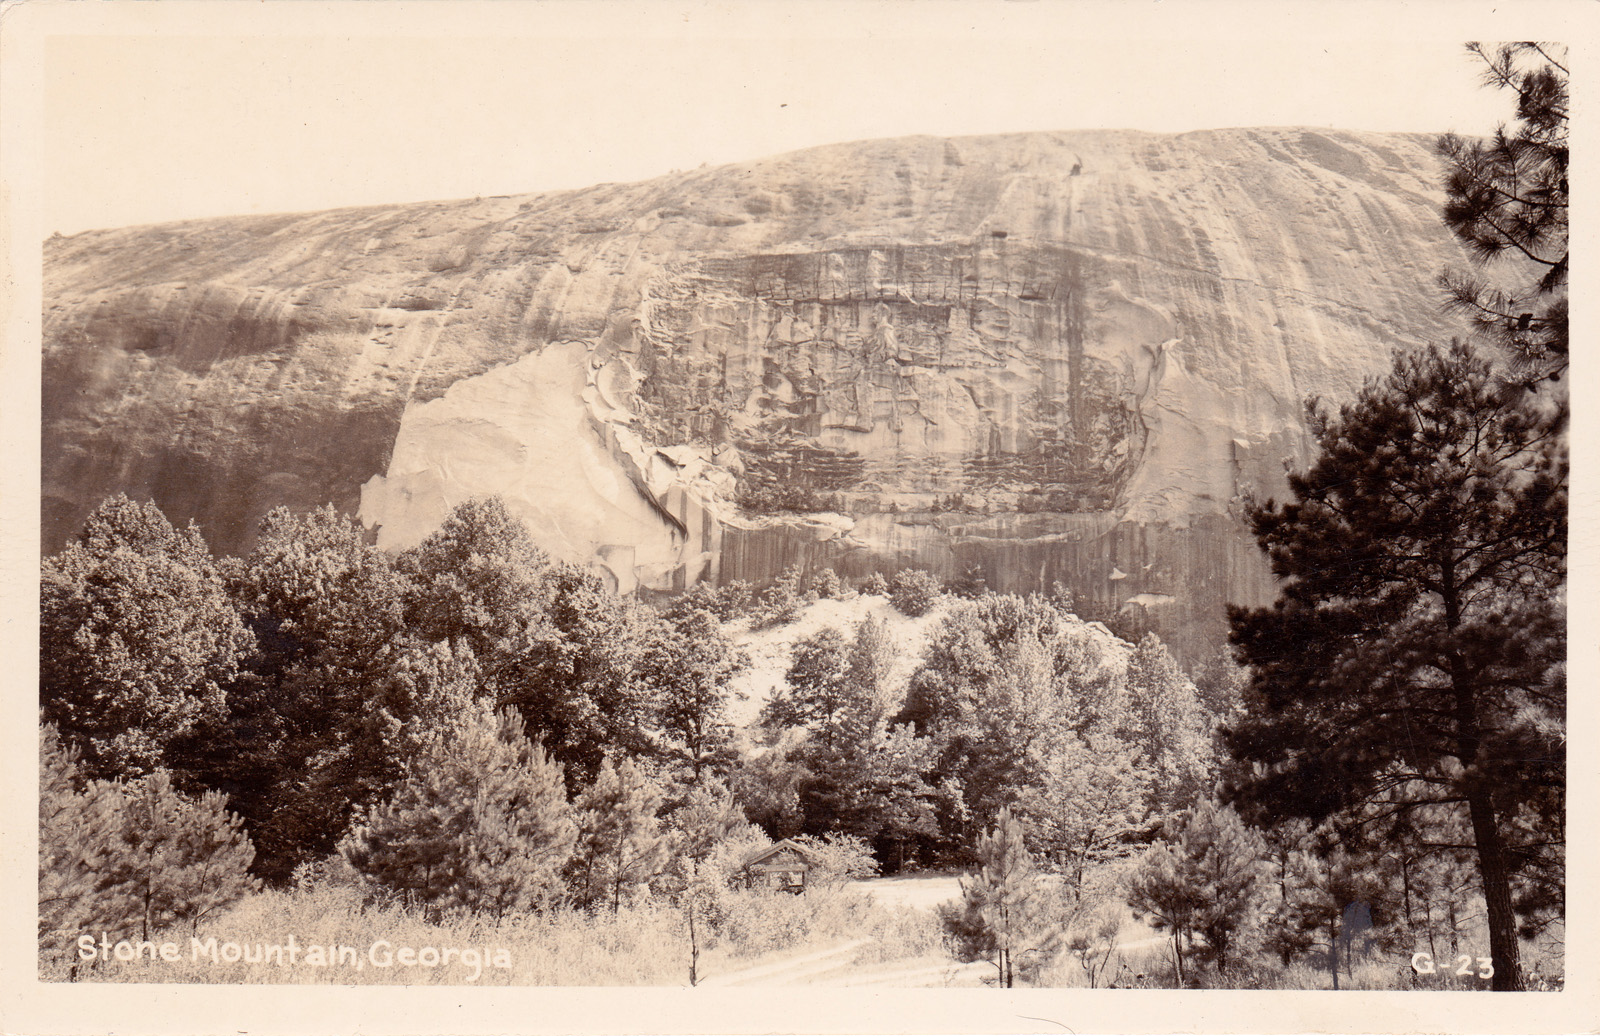 stone-mountain-curvature-old-photos